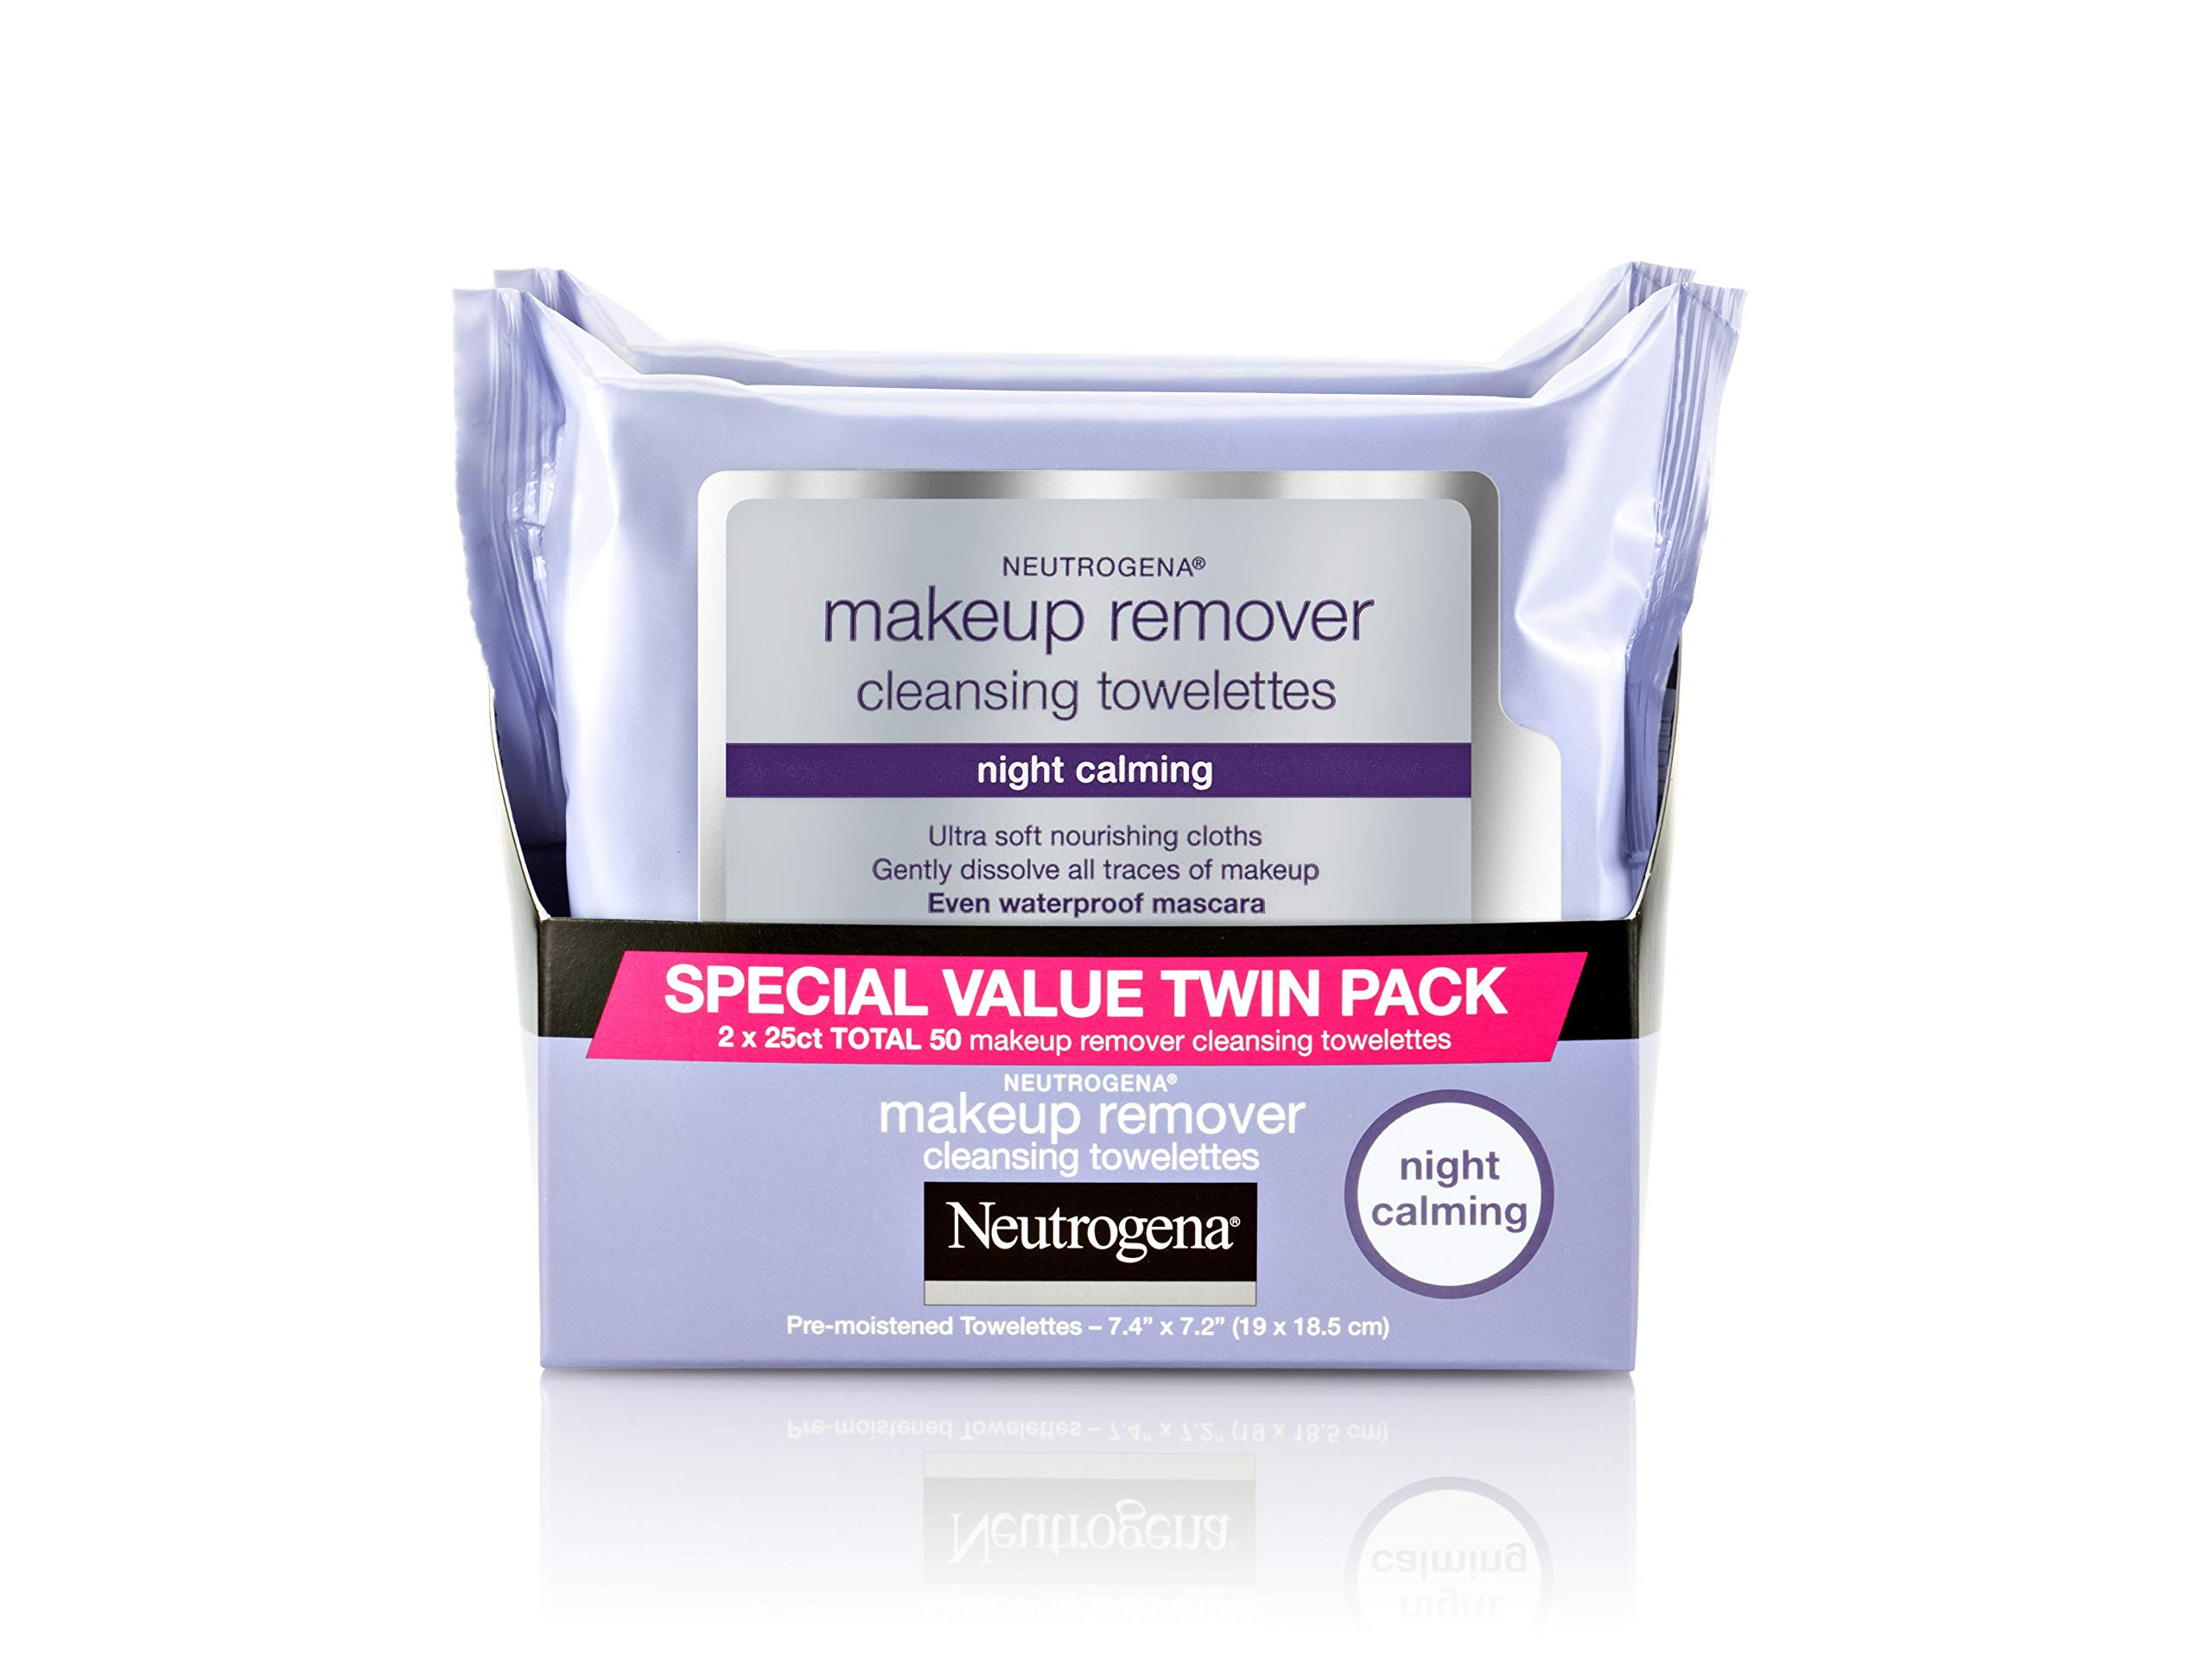 Neutrogena Makeup Remover Night Calming Cleansing Towelettes, Disposable Nighttime Face Wipes to Remove Dirt, Oil & Makeup, 25 ct 2 Pk by Neutrogena